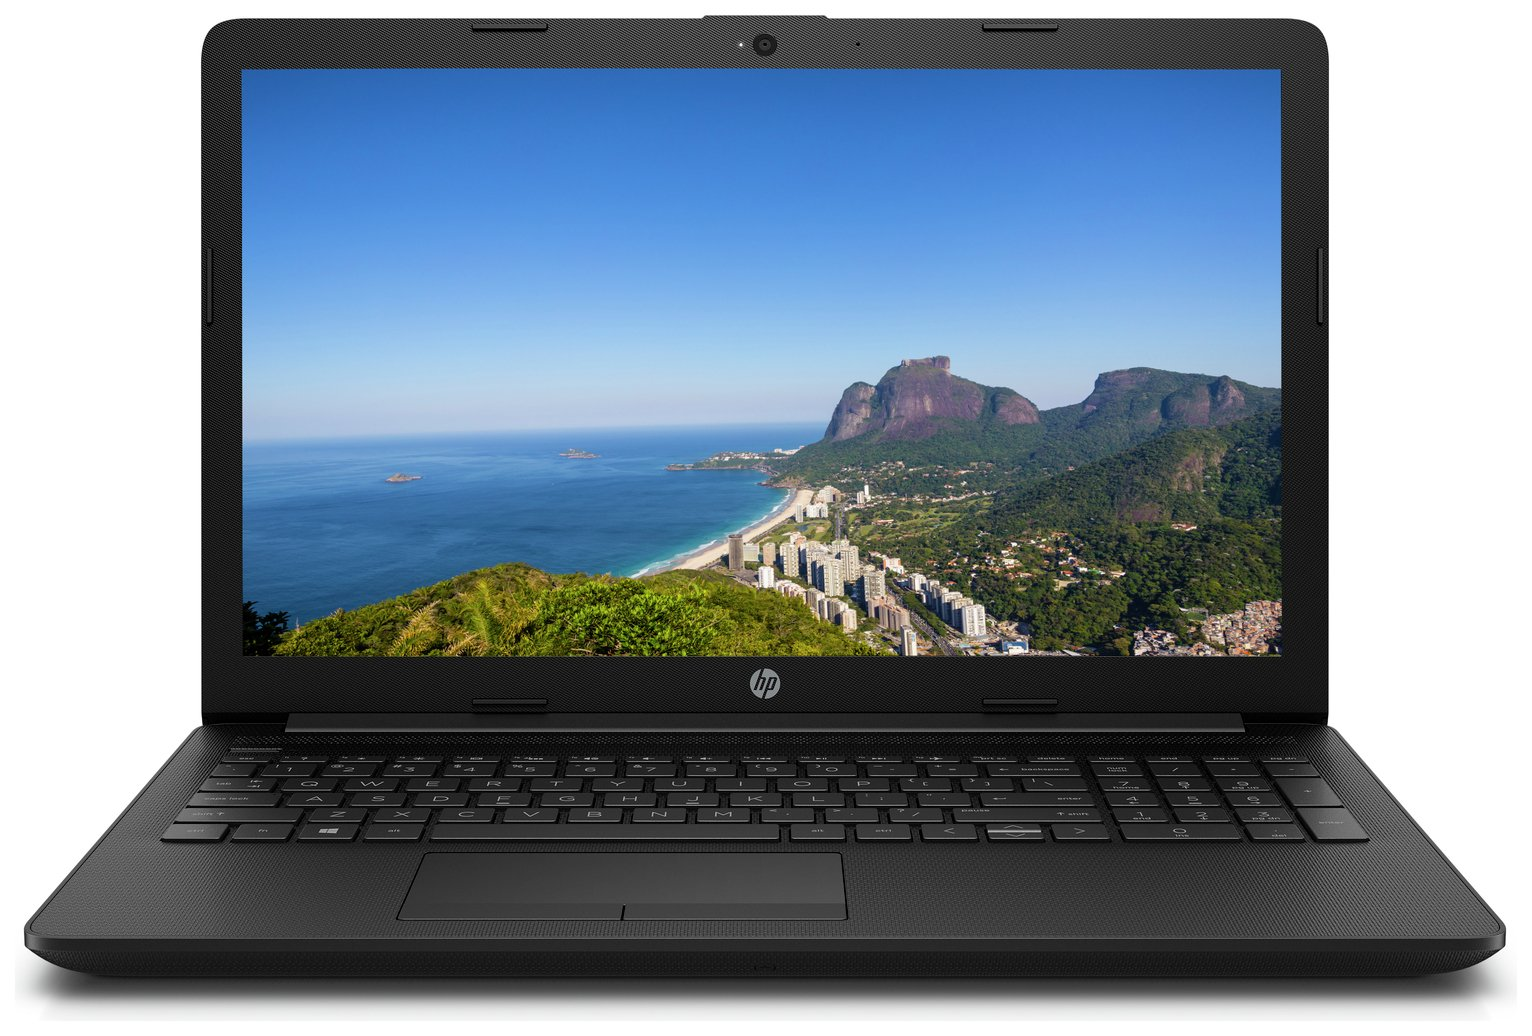 HP 17 Inch AMD A6 4GB 1TB HD Laptop - Black